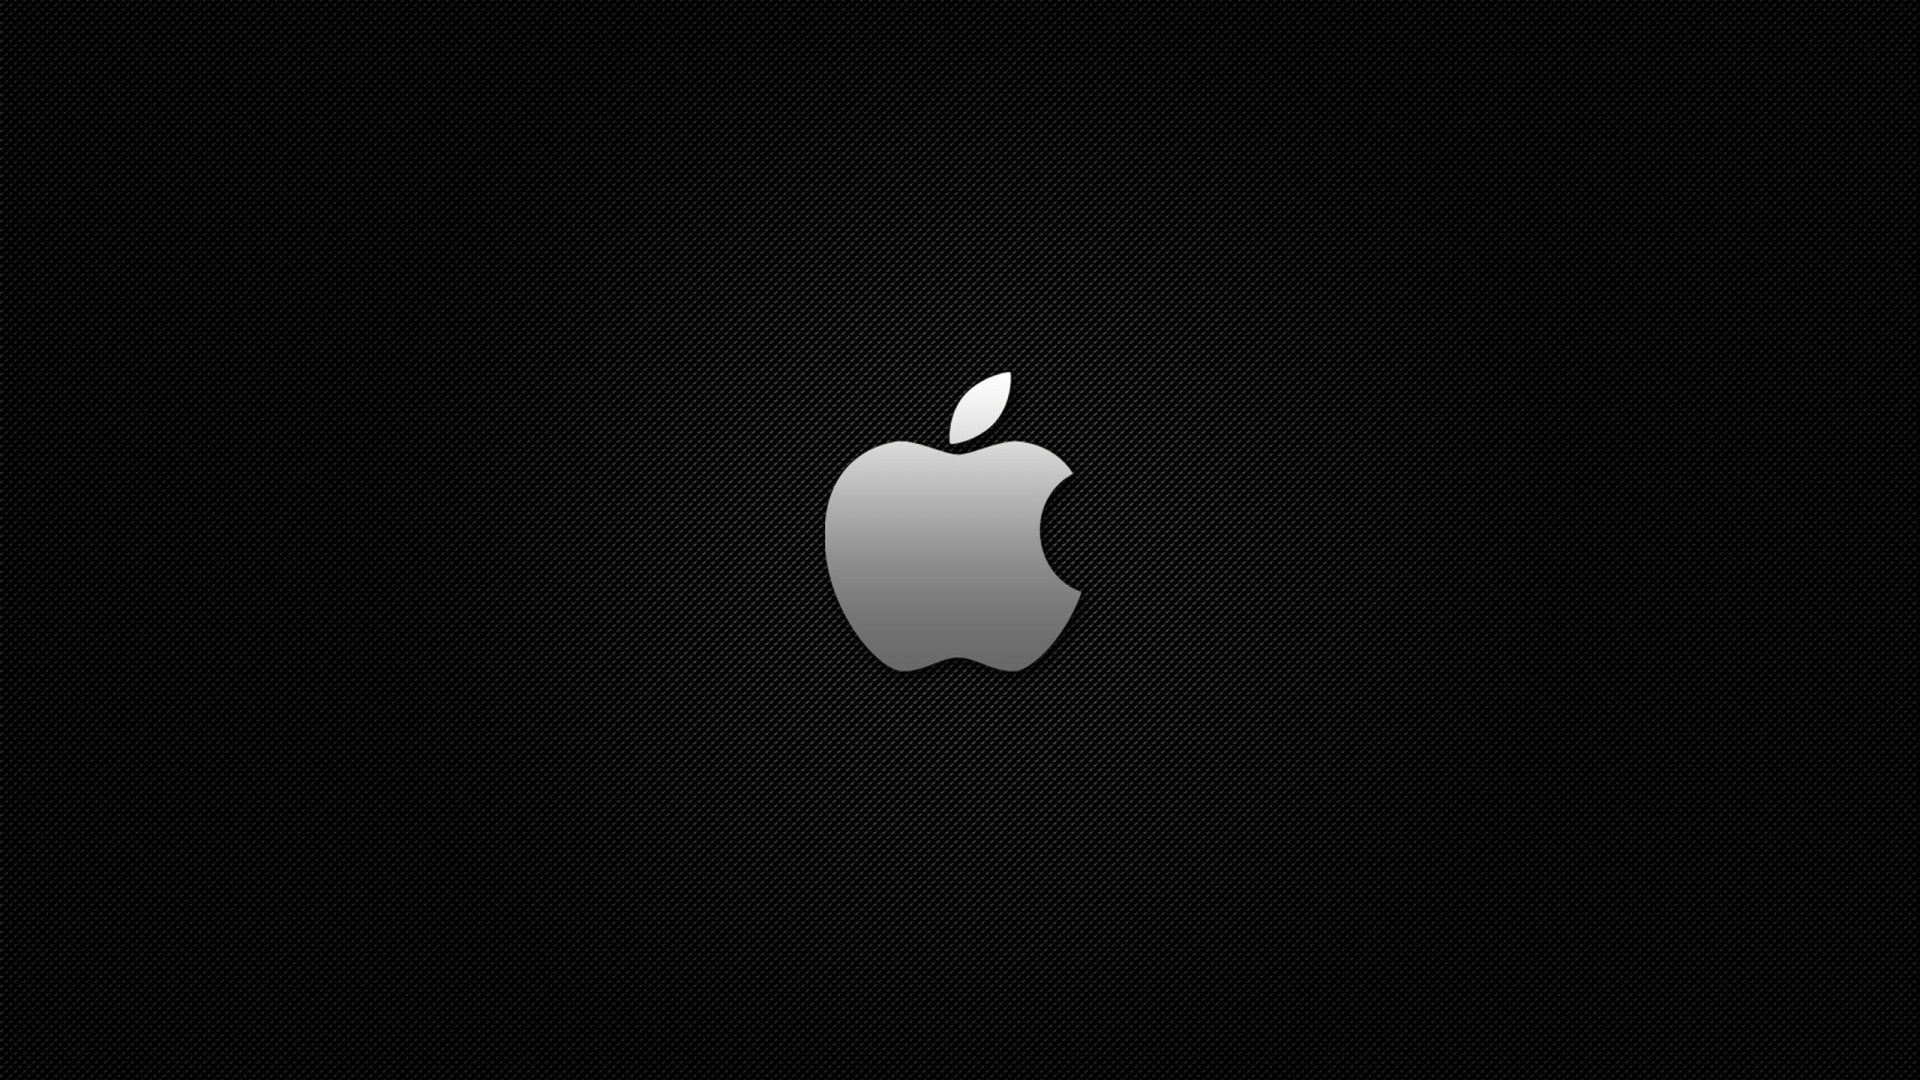 Black Apple Logo Wallpapers HD Wallpaper